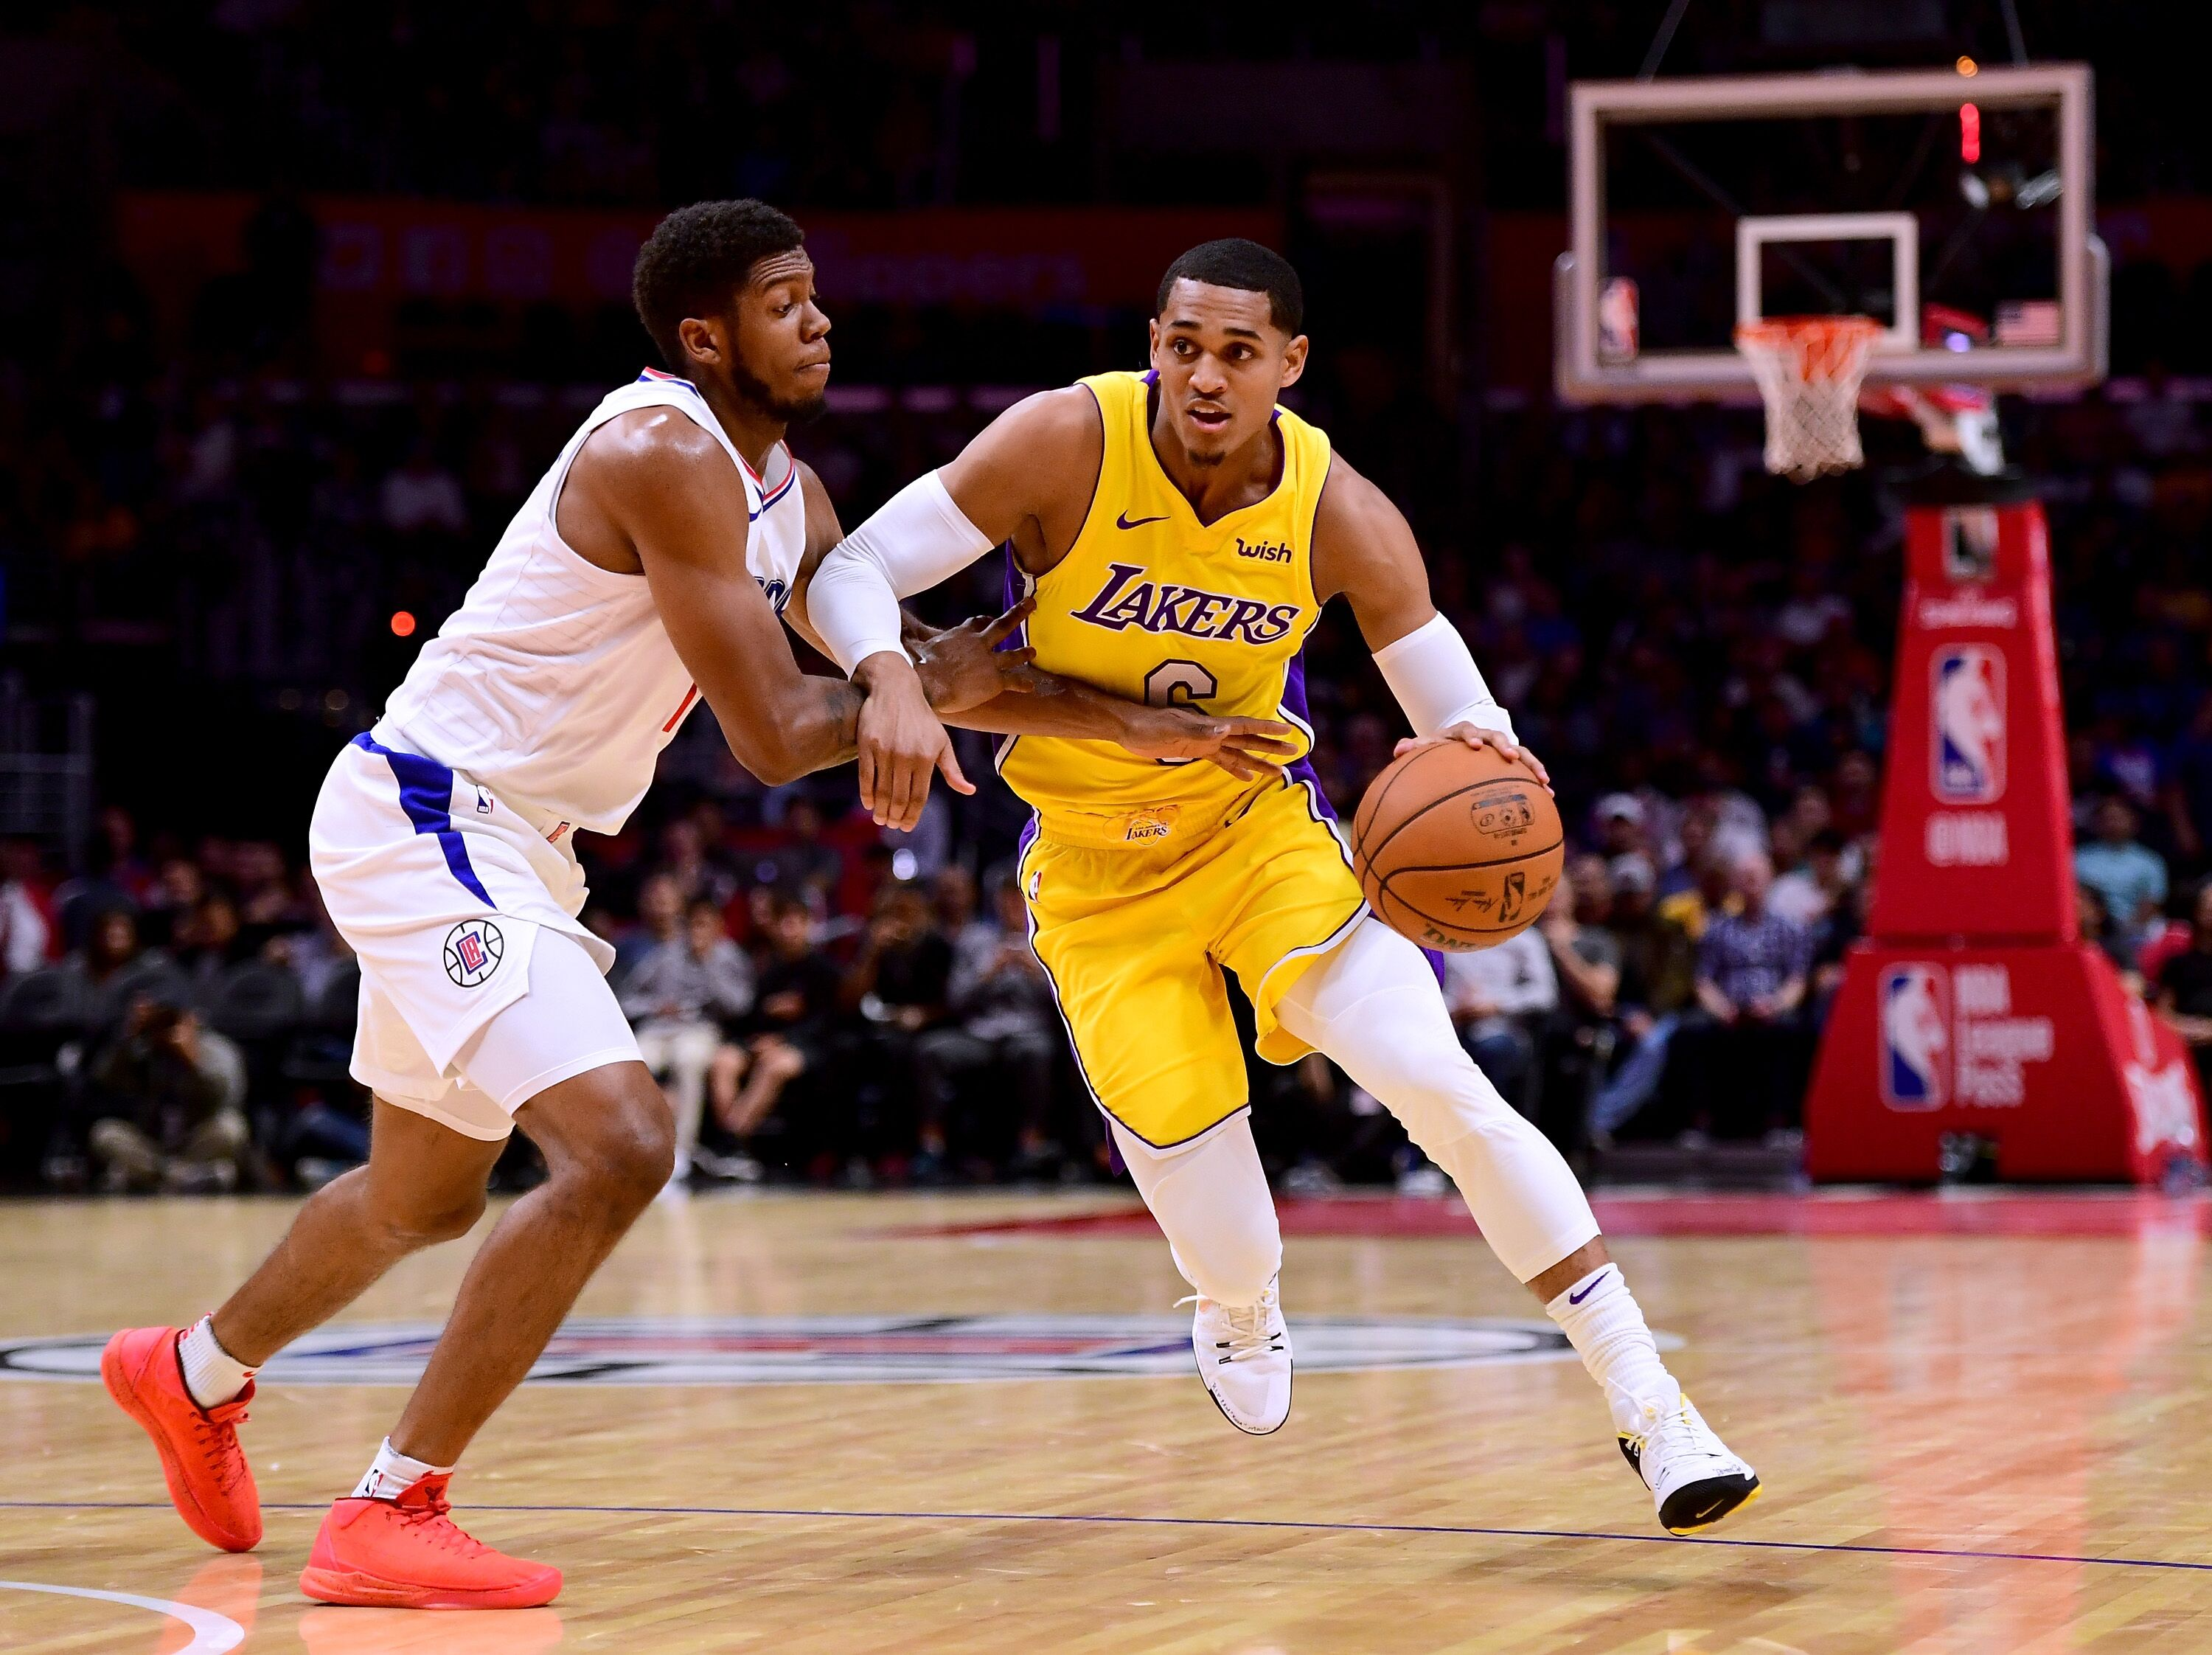 863148904-los-angeles-lakers-v-los-angeles-clippers.jpg